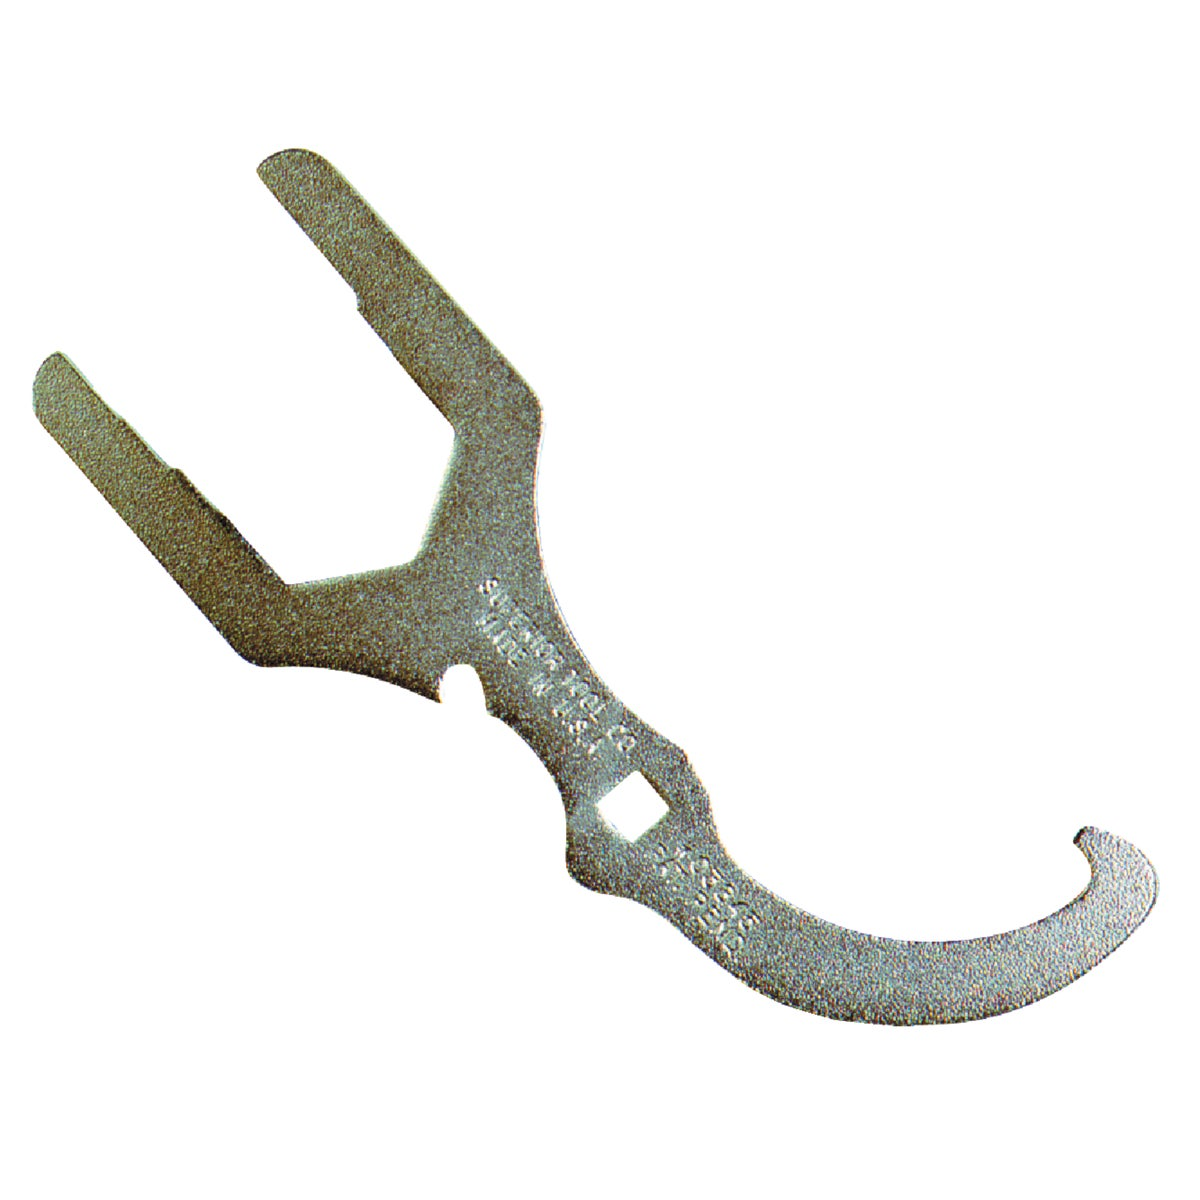 SINK DRAIN WRENCH